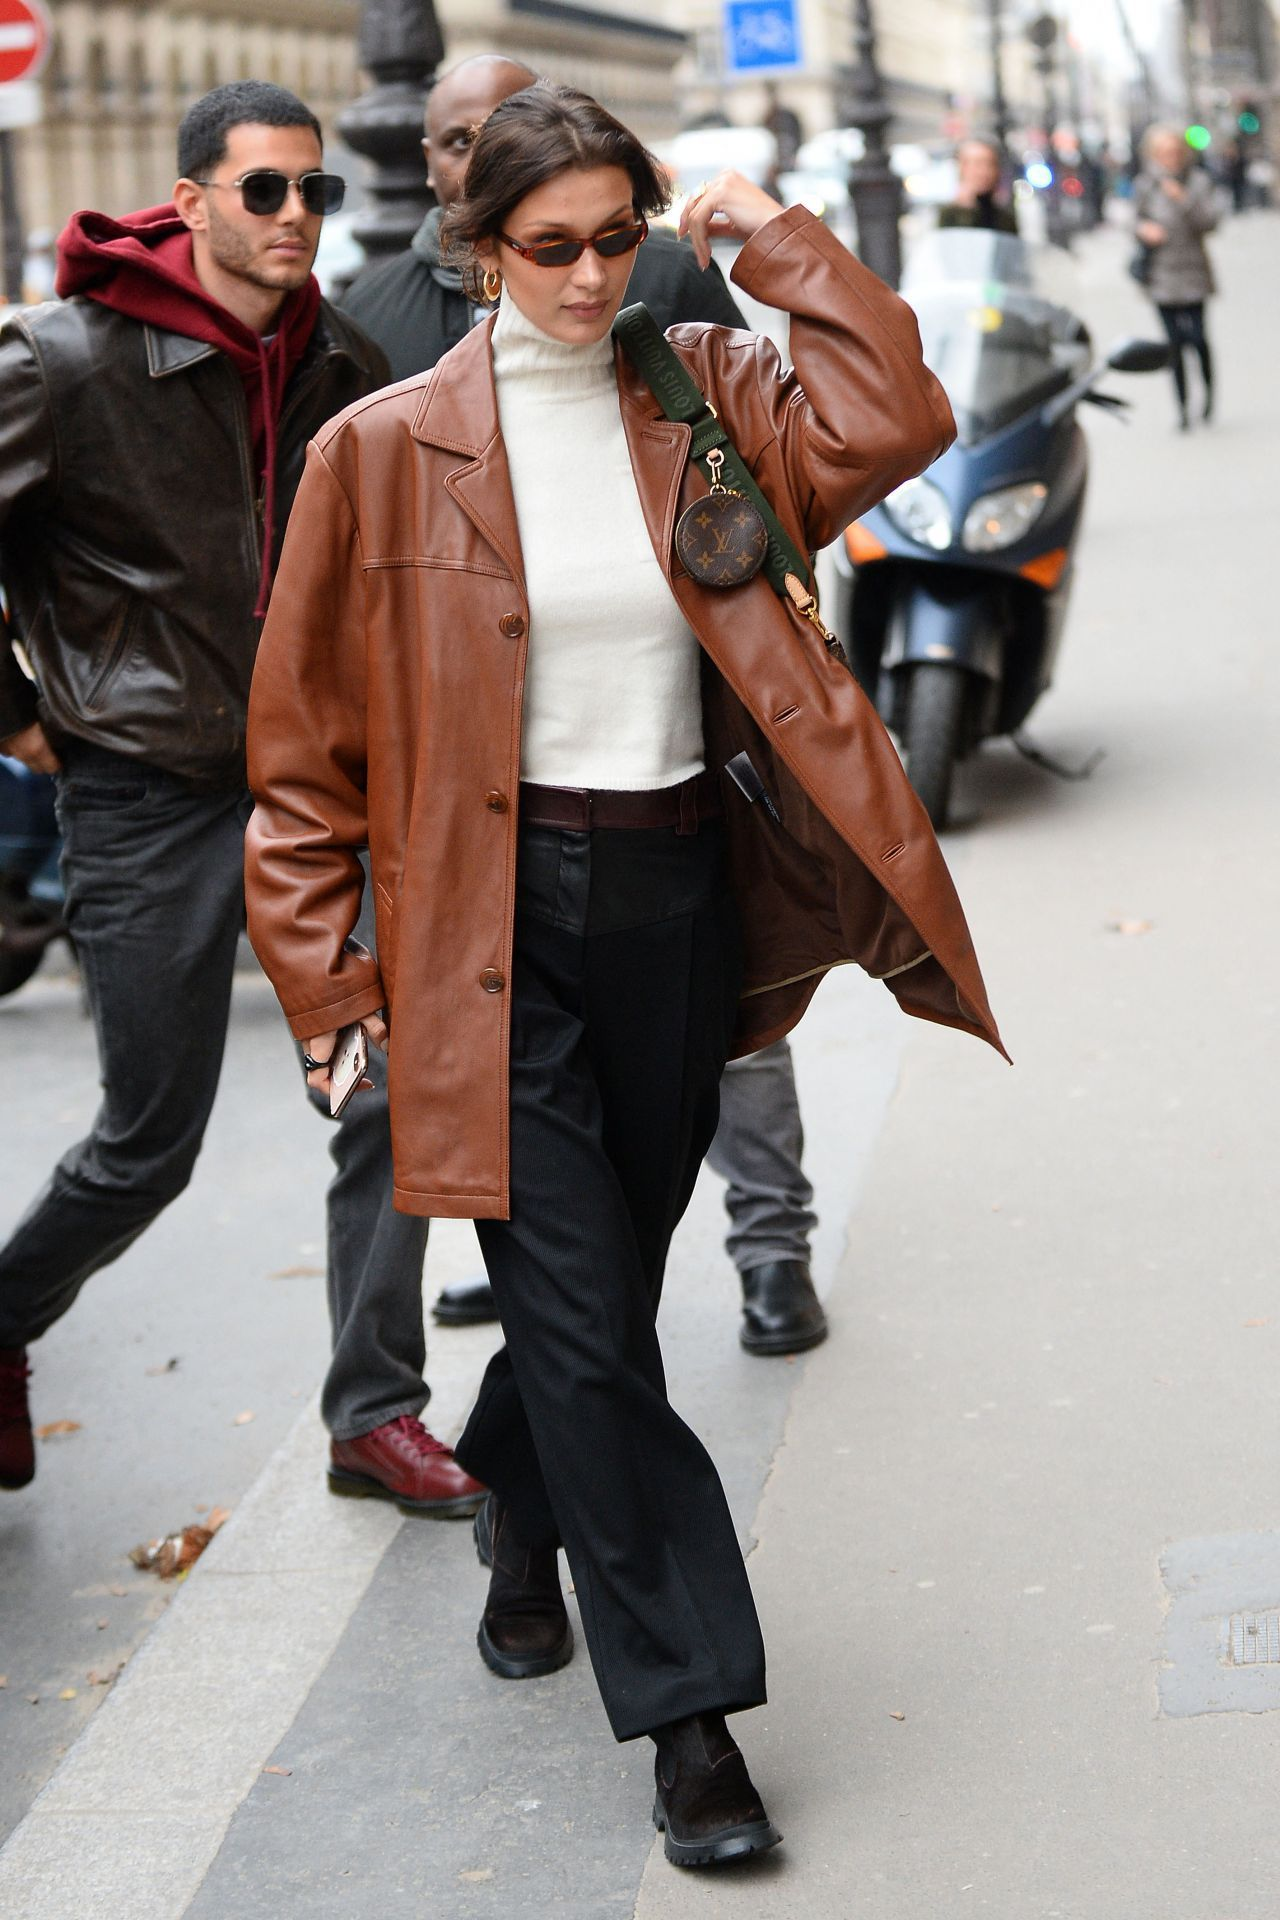 Bella Hadid in Paris – Winter 2020 Street Style